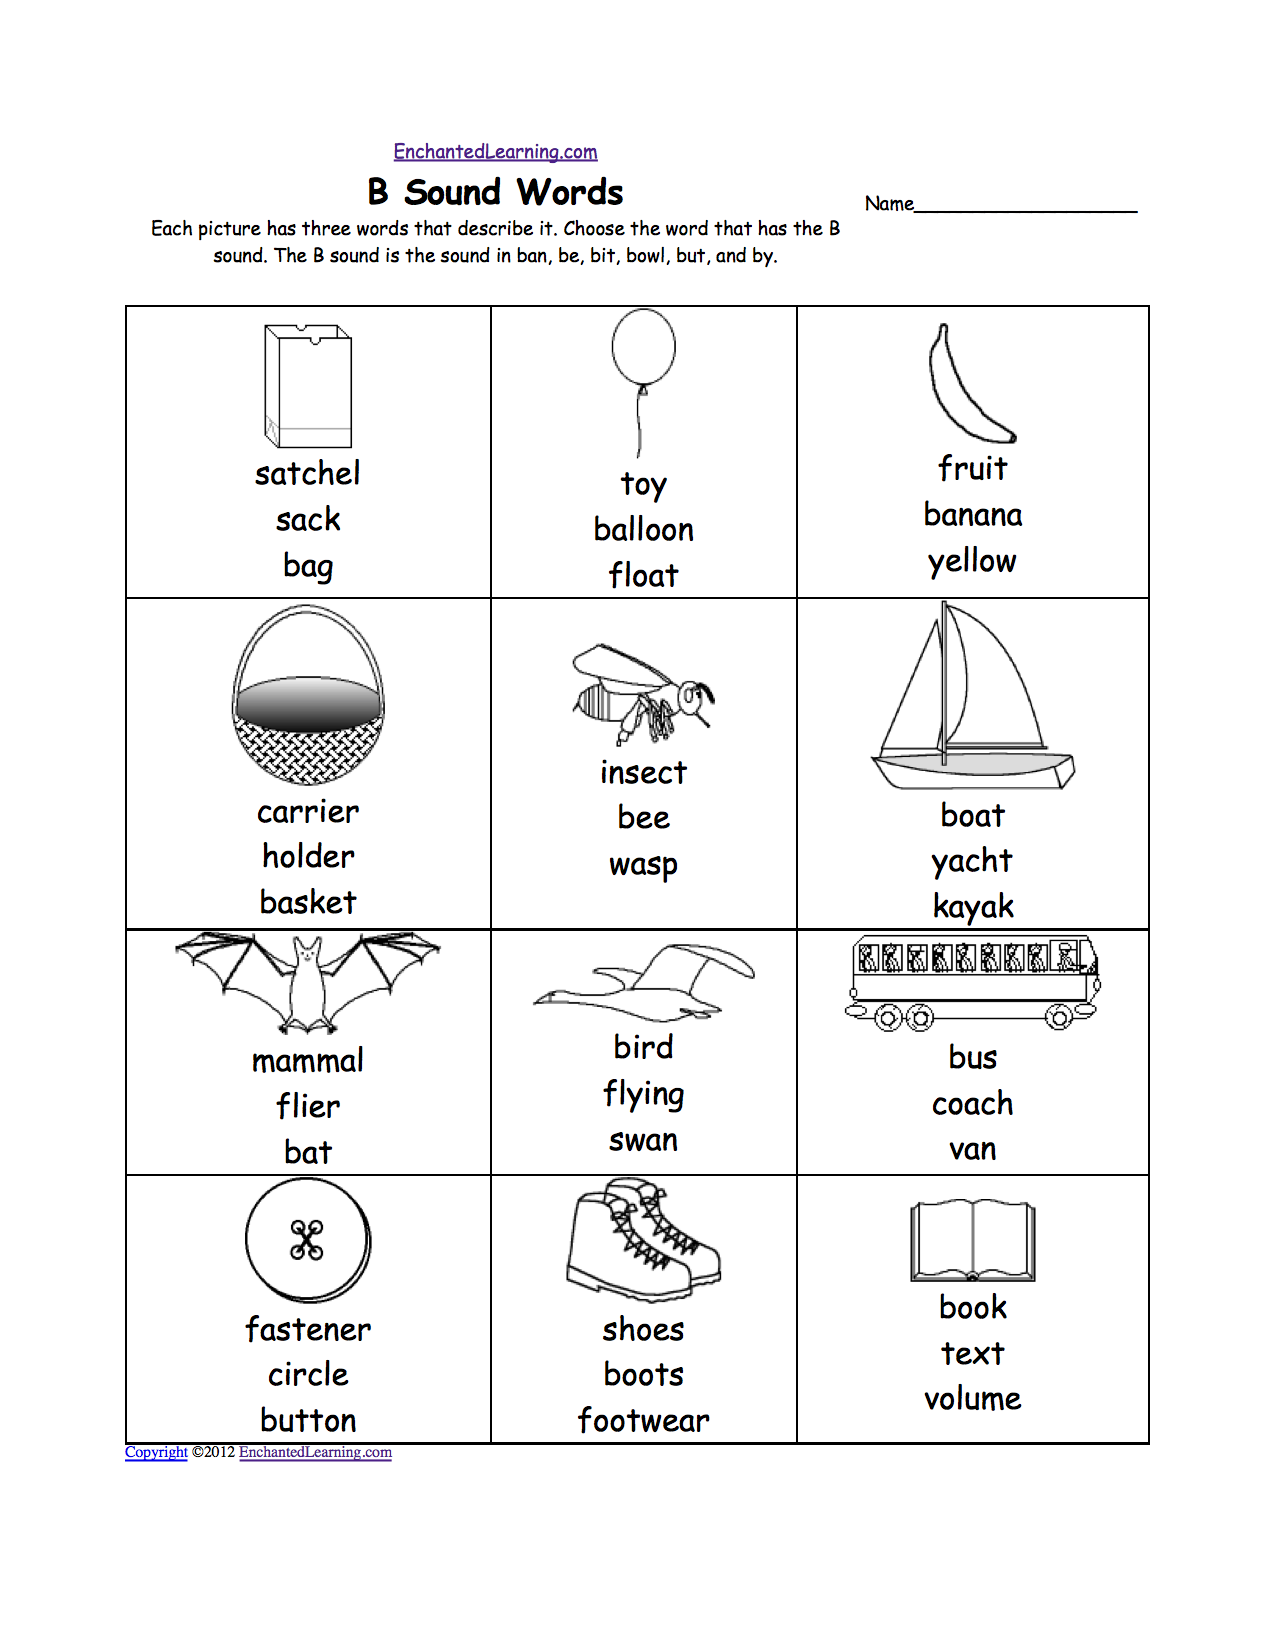 Proatmealus  Surprising Phonics Worksheets Multiple Choice Worksheets To Print  With Outstanding Quotbquot Sound Phonics Worksheet Multiple Choice Each Picture Has Three Words That Describe It Choose The Word That Has A Quotbquot Sound The Quotbquot Sound Is The Sound  With Appealing Free Printable Clock Worksheets Also Th Grade Printable Worksheets In Addition Letter Tracing Worksheet And Chemistry If Worksheet Answers As Well As Worksheets For Th Graders Additionally Letter Tracing Worksheets Free From Enchantedlearningcom With Proatmealus  Outstanding Phonics Worksheets Multiple Choice Worksheets To Print  With Appealing Quotbquot Sound Phonics Worksheet Multiple Choice Each Picture Has Three Words That Describe It Choose The Word That Has A Quotbquot Sound The Quotbquot Sound Is The Sound  And Surprising Free Printable Clock Worksheets Also Th Grade Printable Worksheets In Addition Letter Tracing Worksheet From Enchantedlearningcom